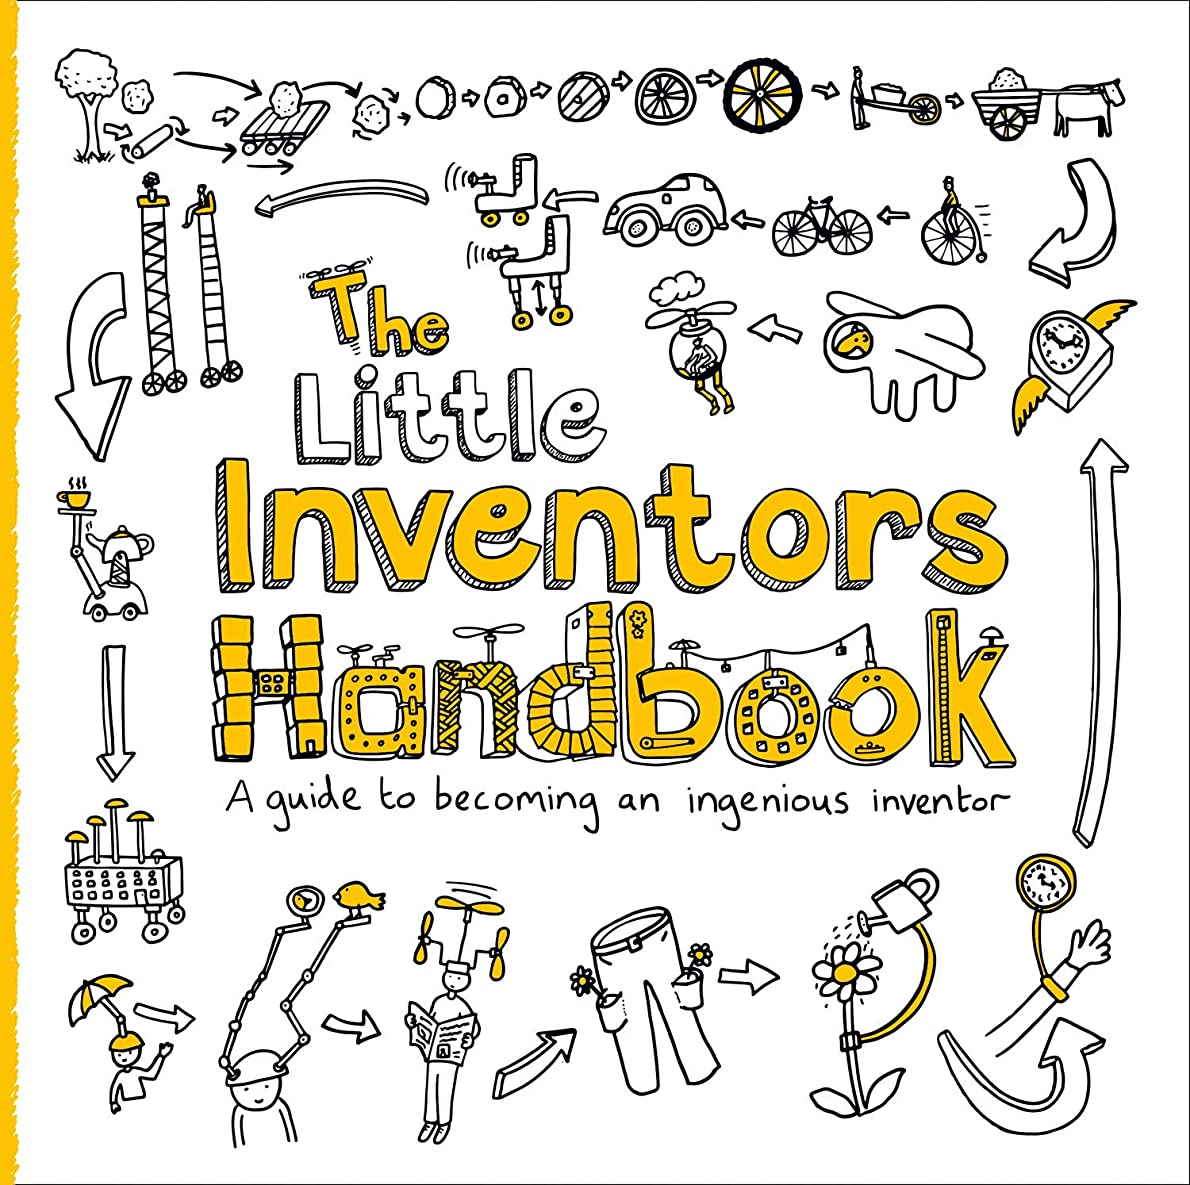 日試みる振り子The Little Inventors Handbook: A guide to becoming an ingenious inventor (English Edition)